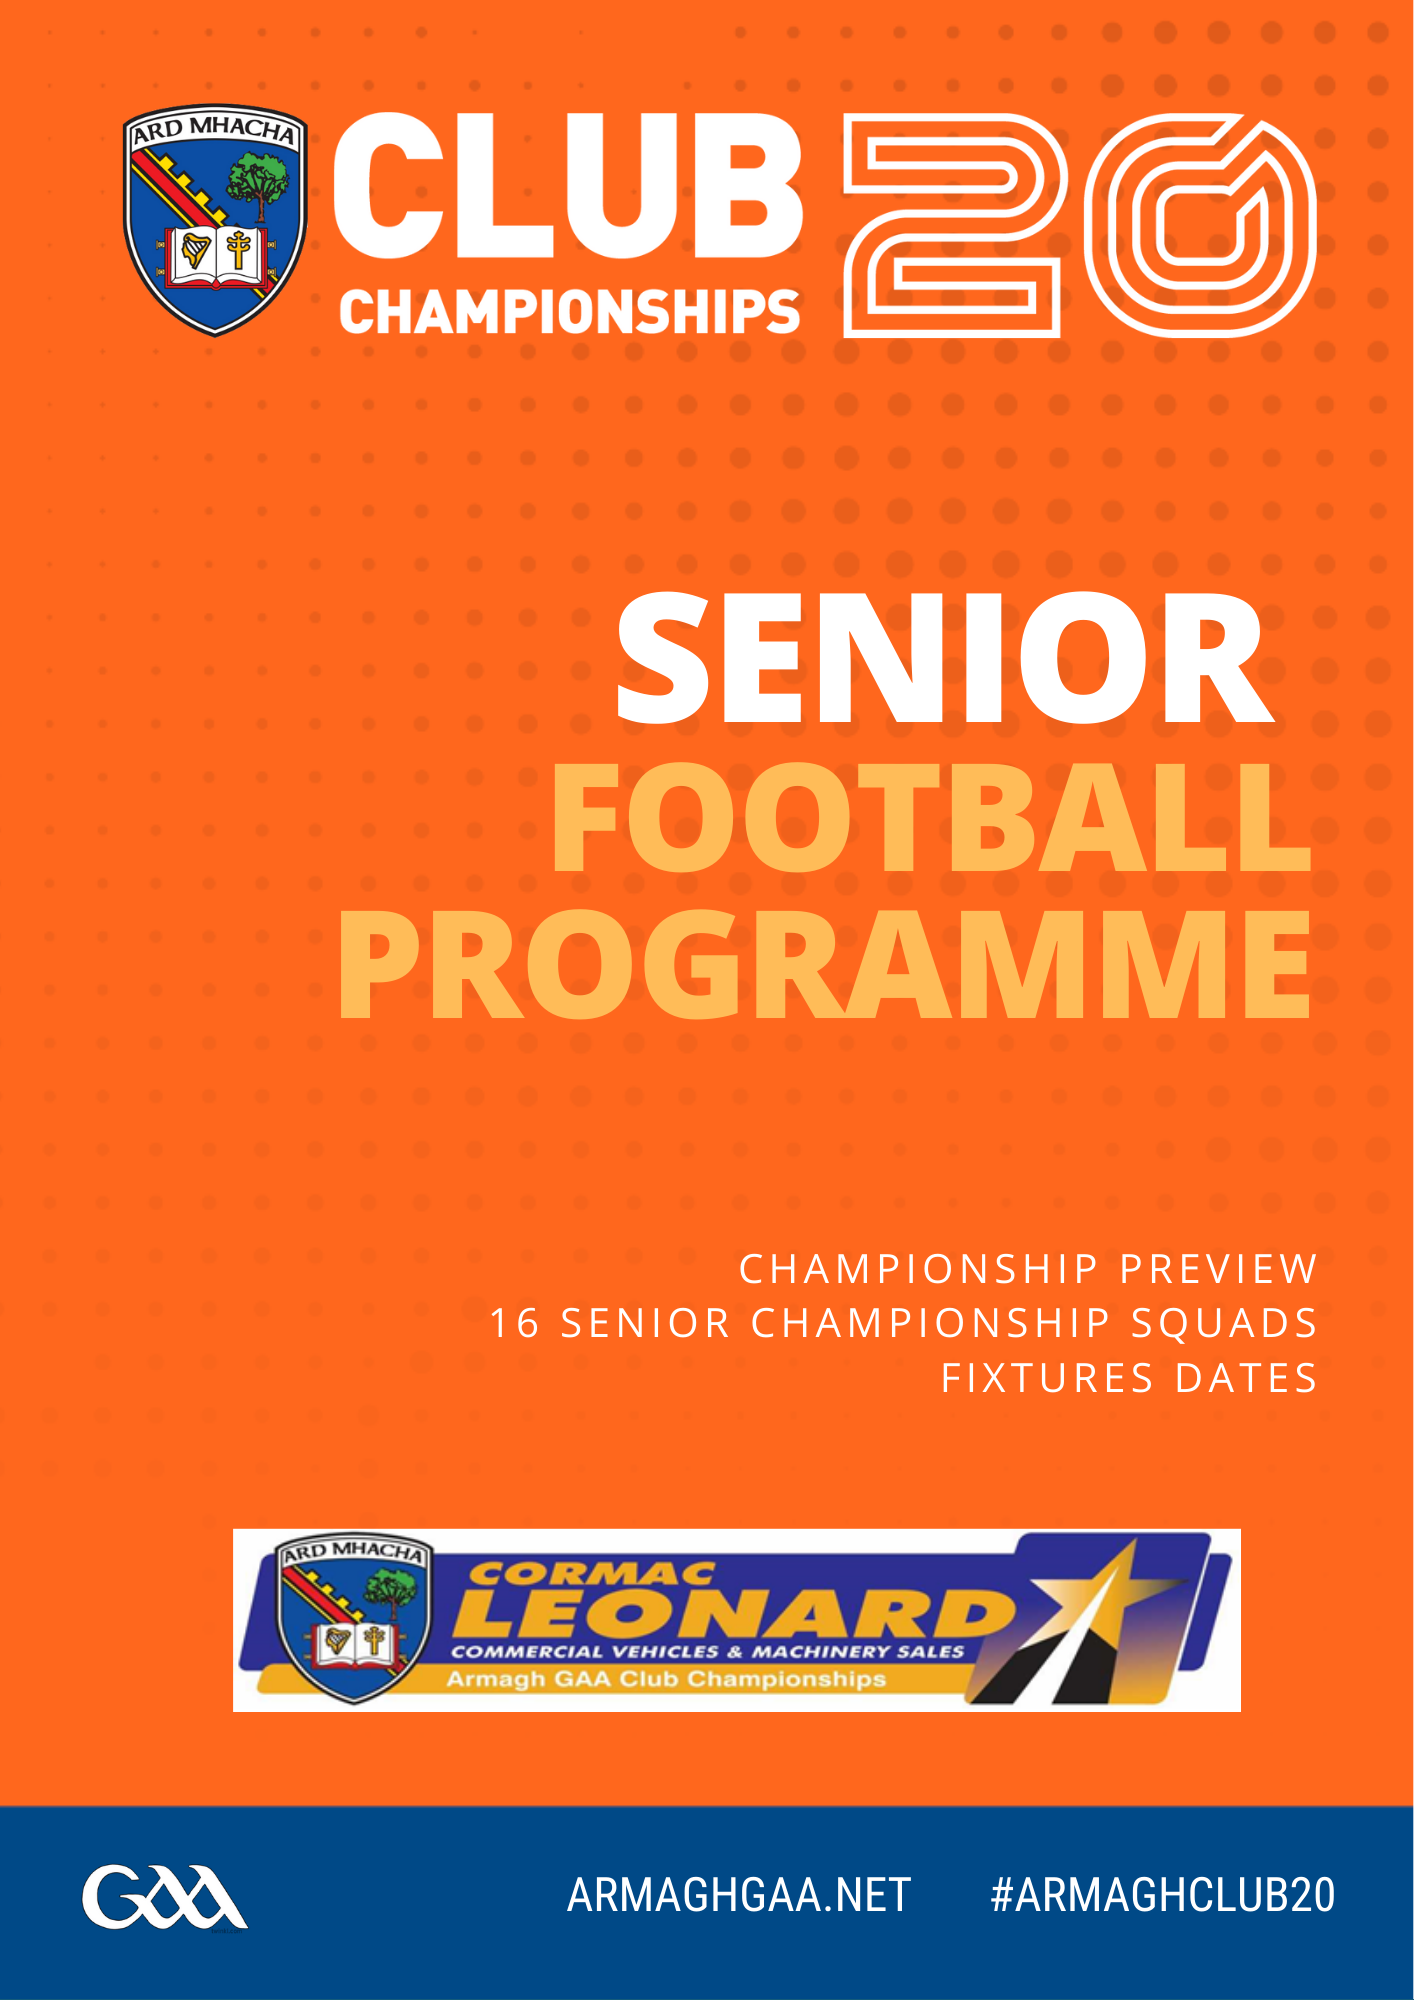 Link to Digital Programme: Armagh Club Senior Football Championship post